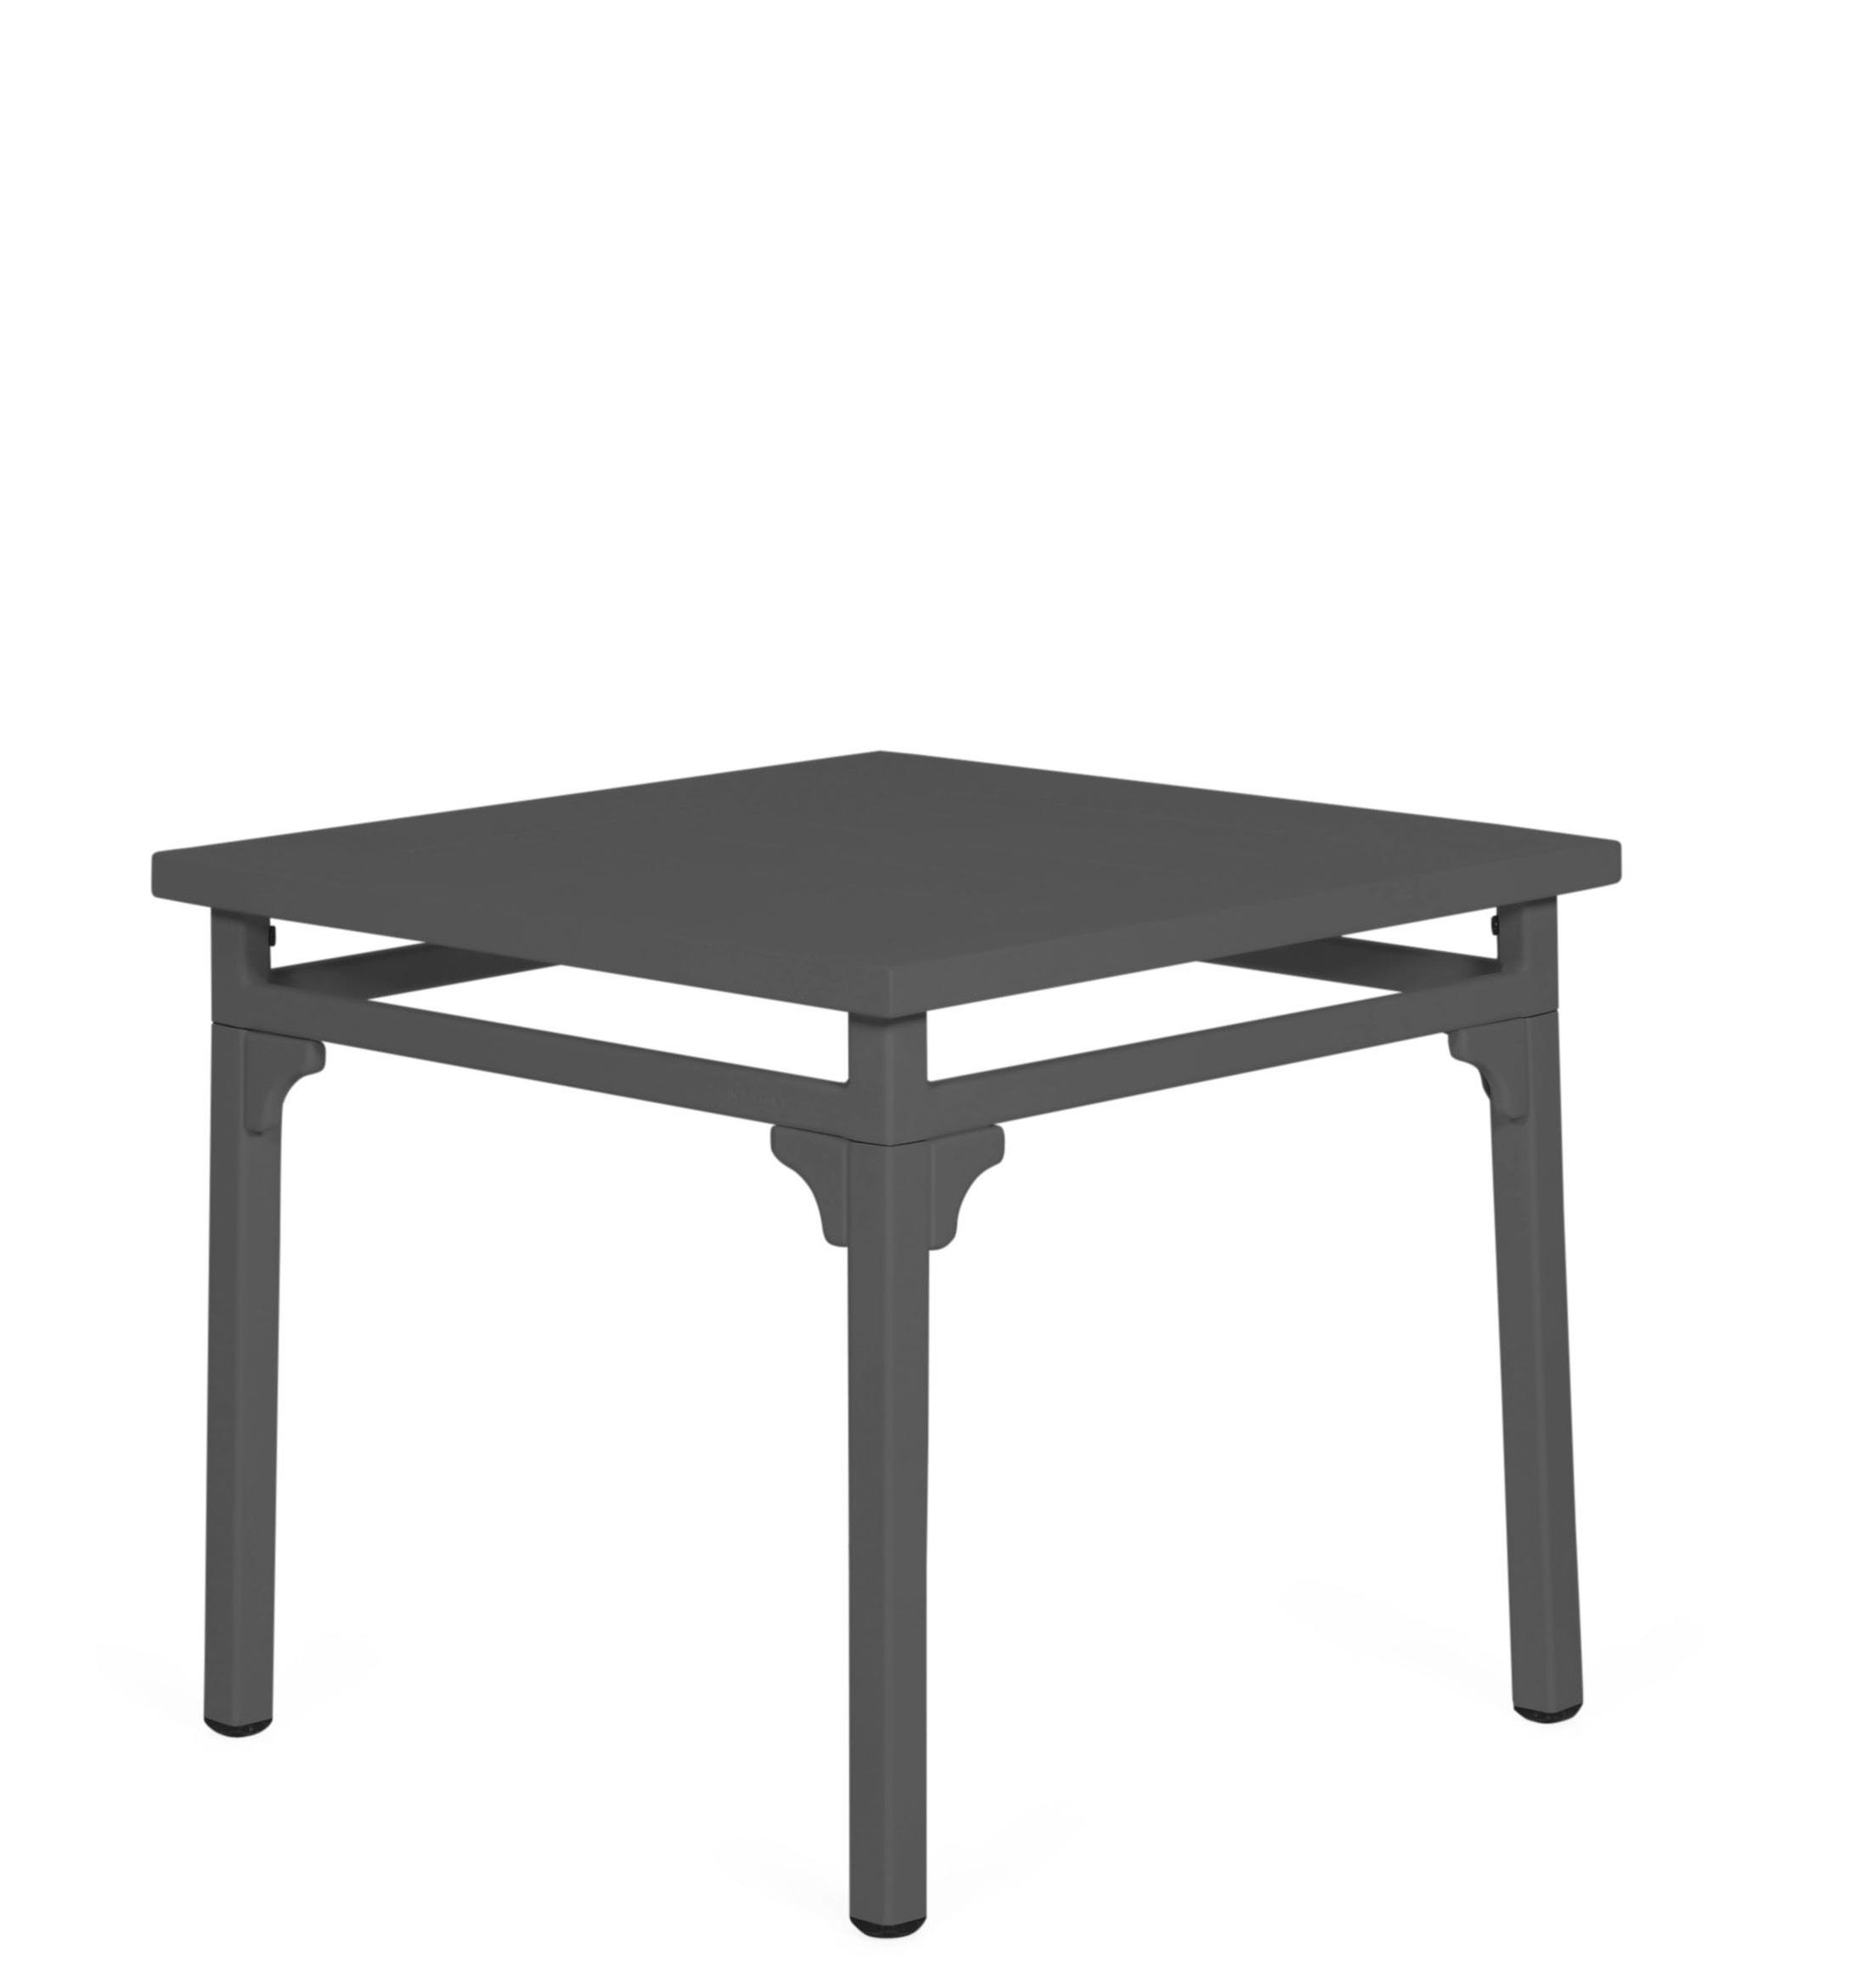 grey aluminium metal square garden dining patio table